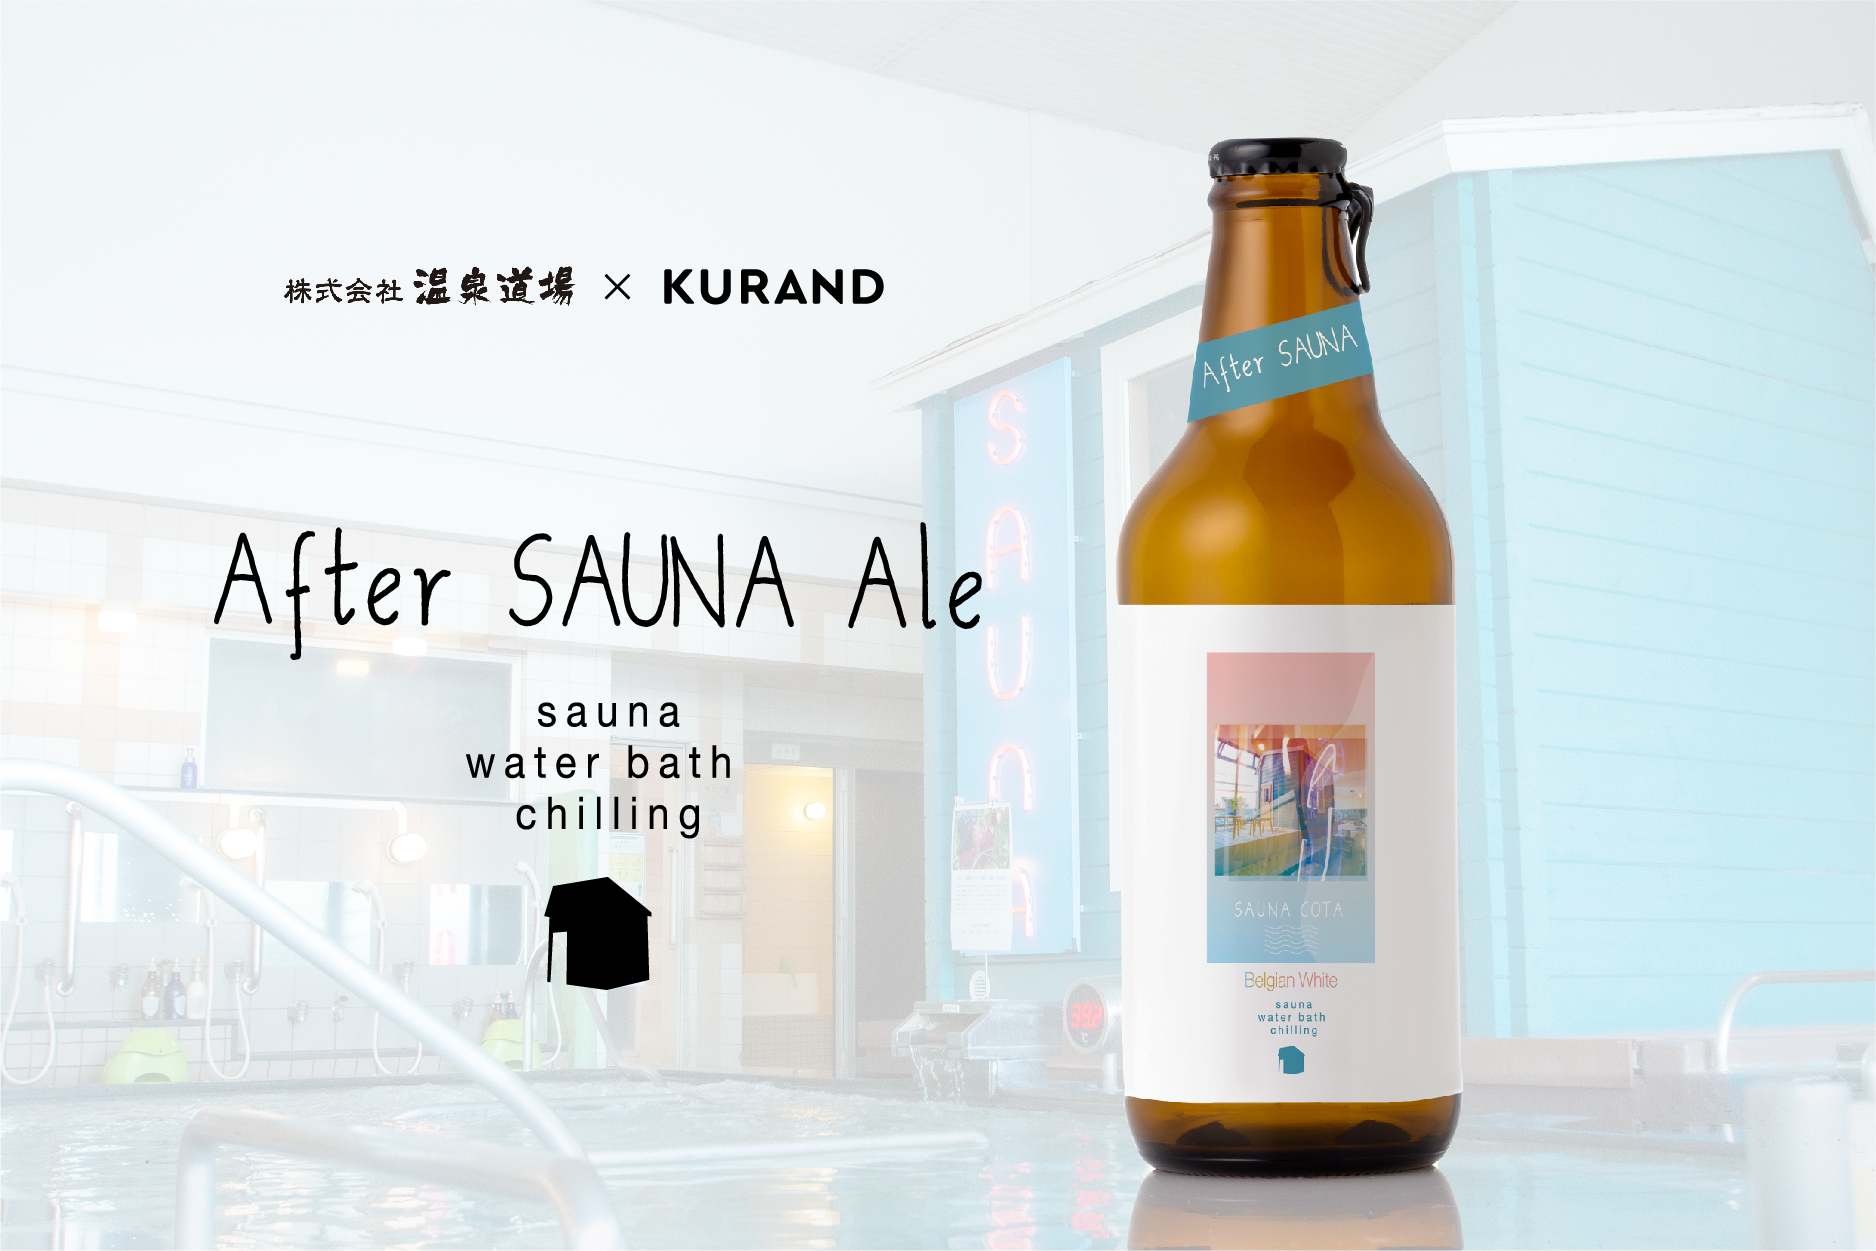 after_sauna_ale_アイキャッチ